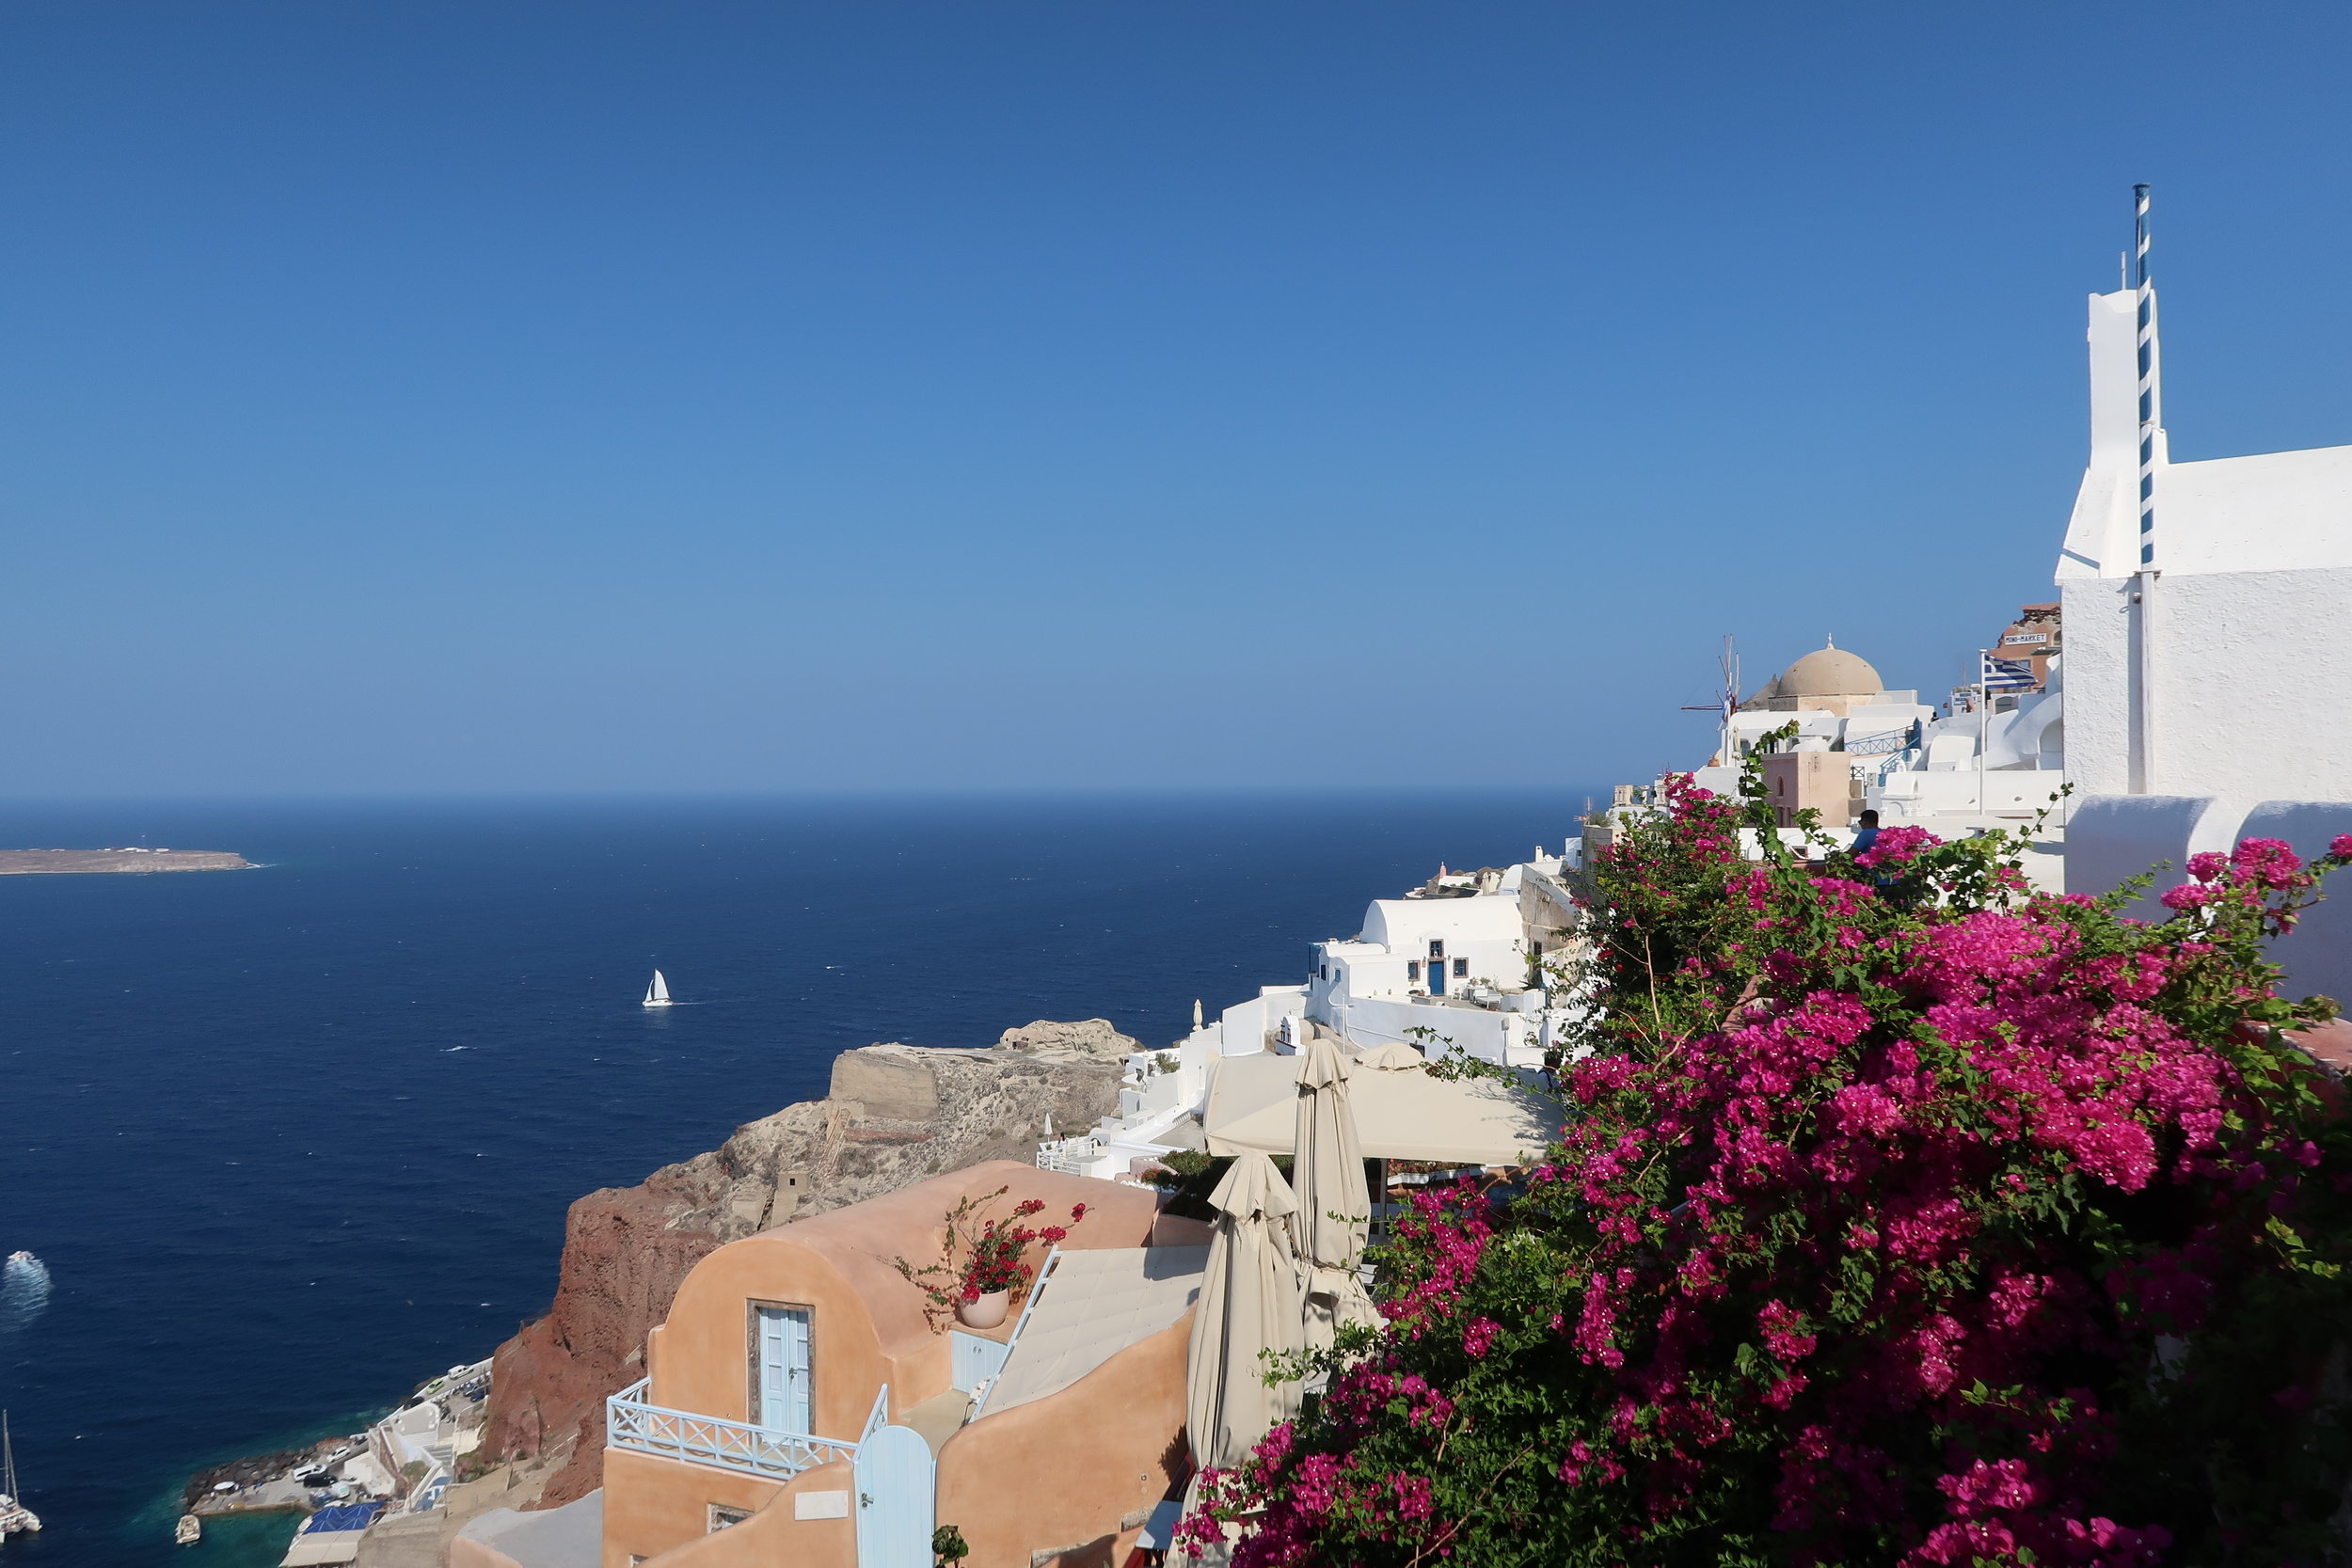 santoriniy-yoga-teacher-training.JPG